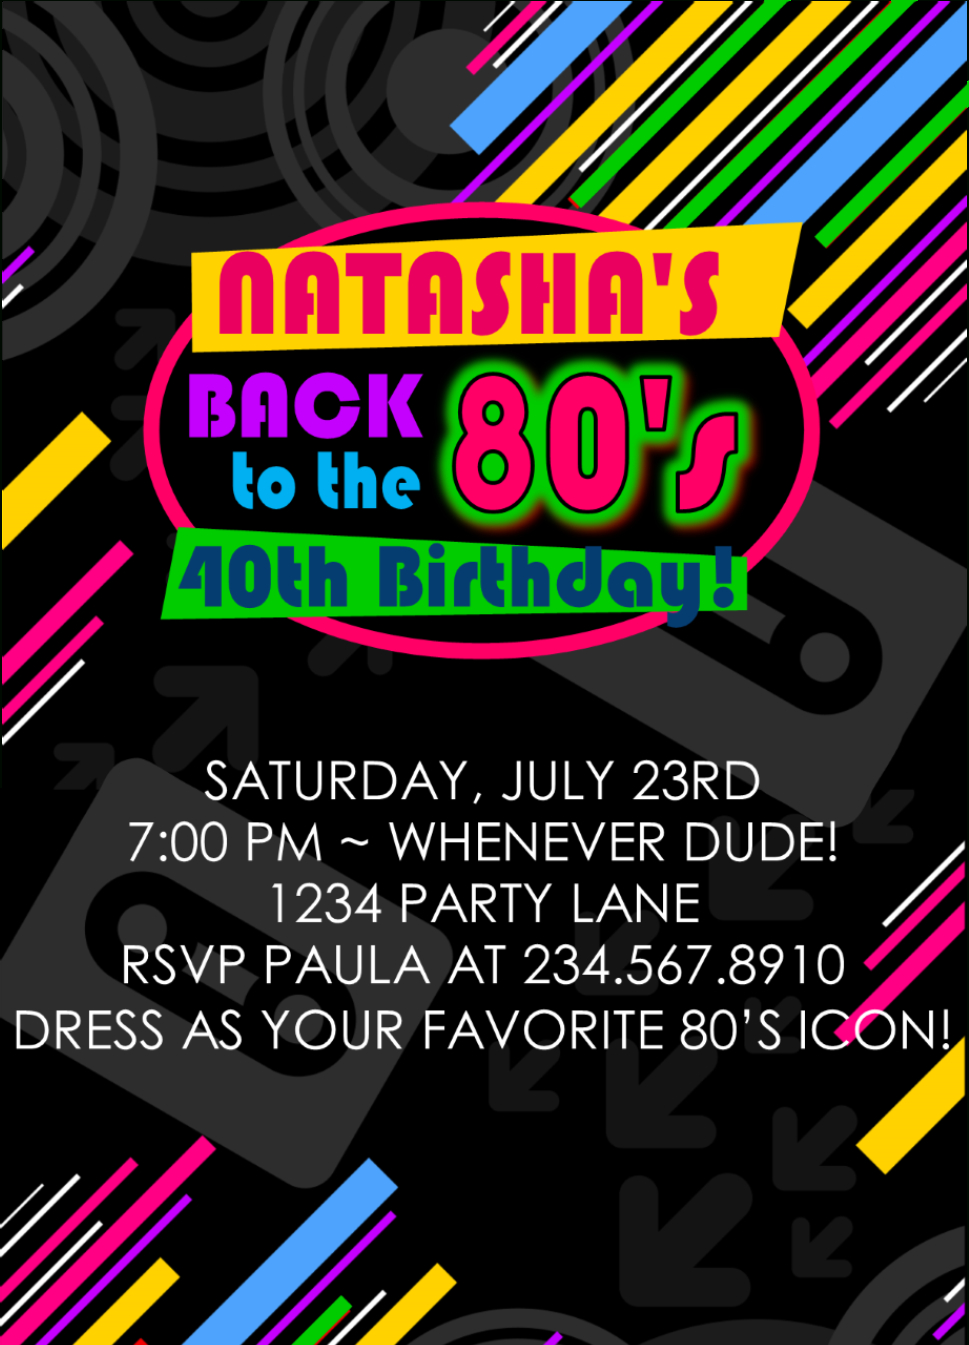 Totally Awesome 80's Theme Party Ideas And 80's Party Ideas For Games! - Free Printable 80S Birthday Party Invitations